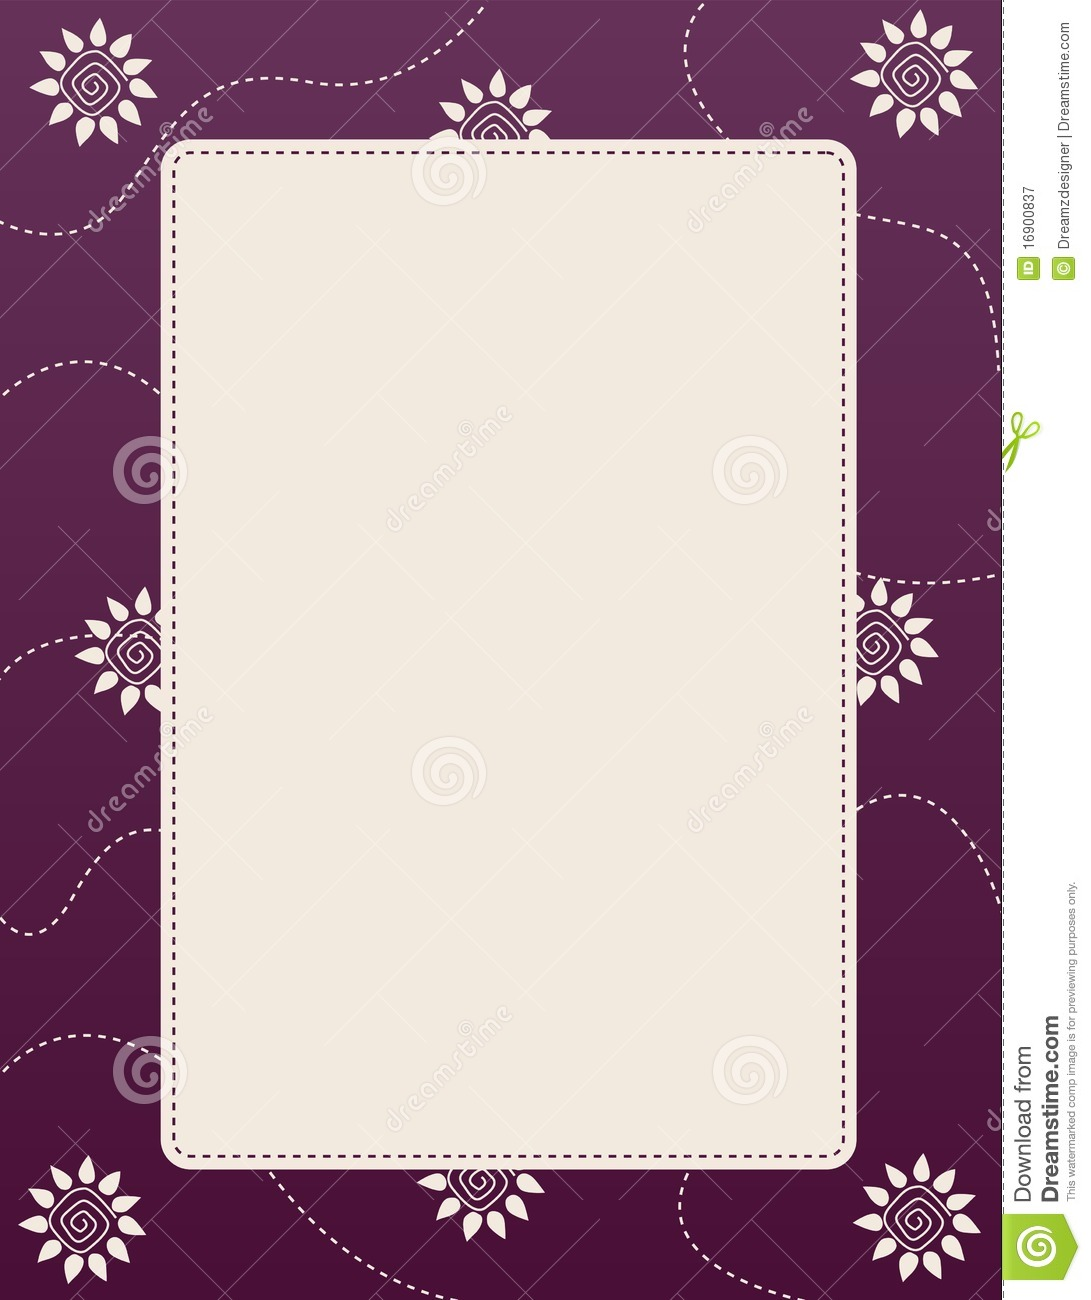 Wedding invitation background stock vector illustration of dotted wedding invitation background stopboris